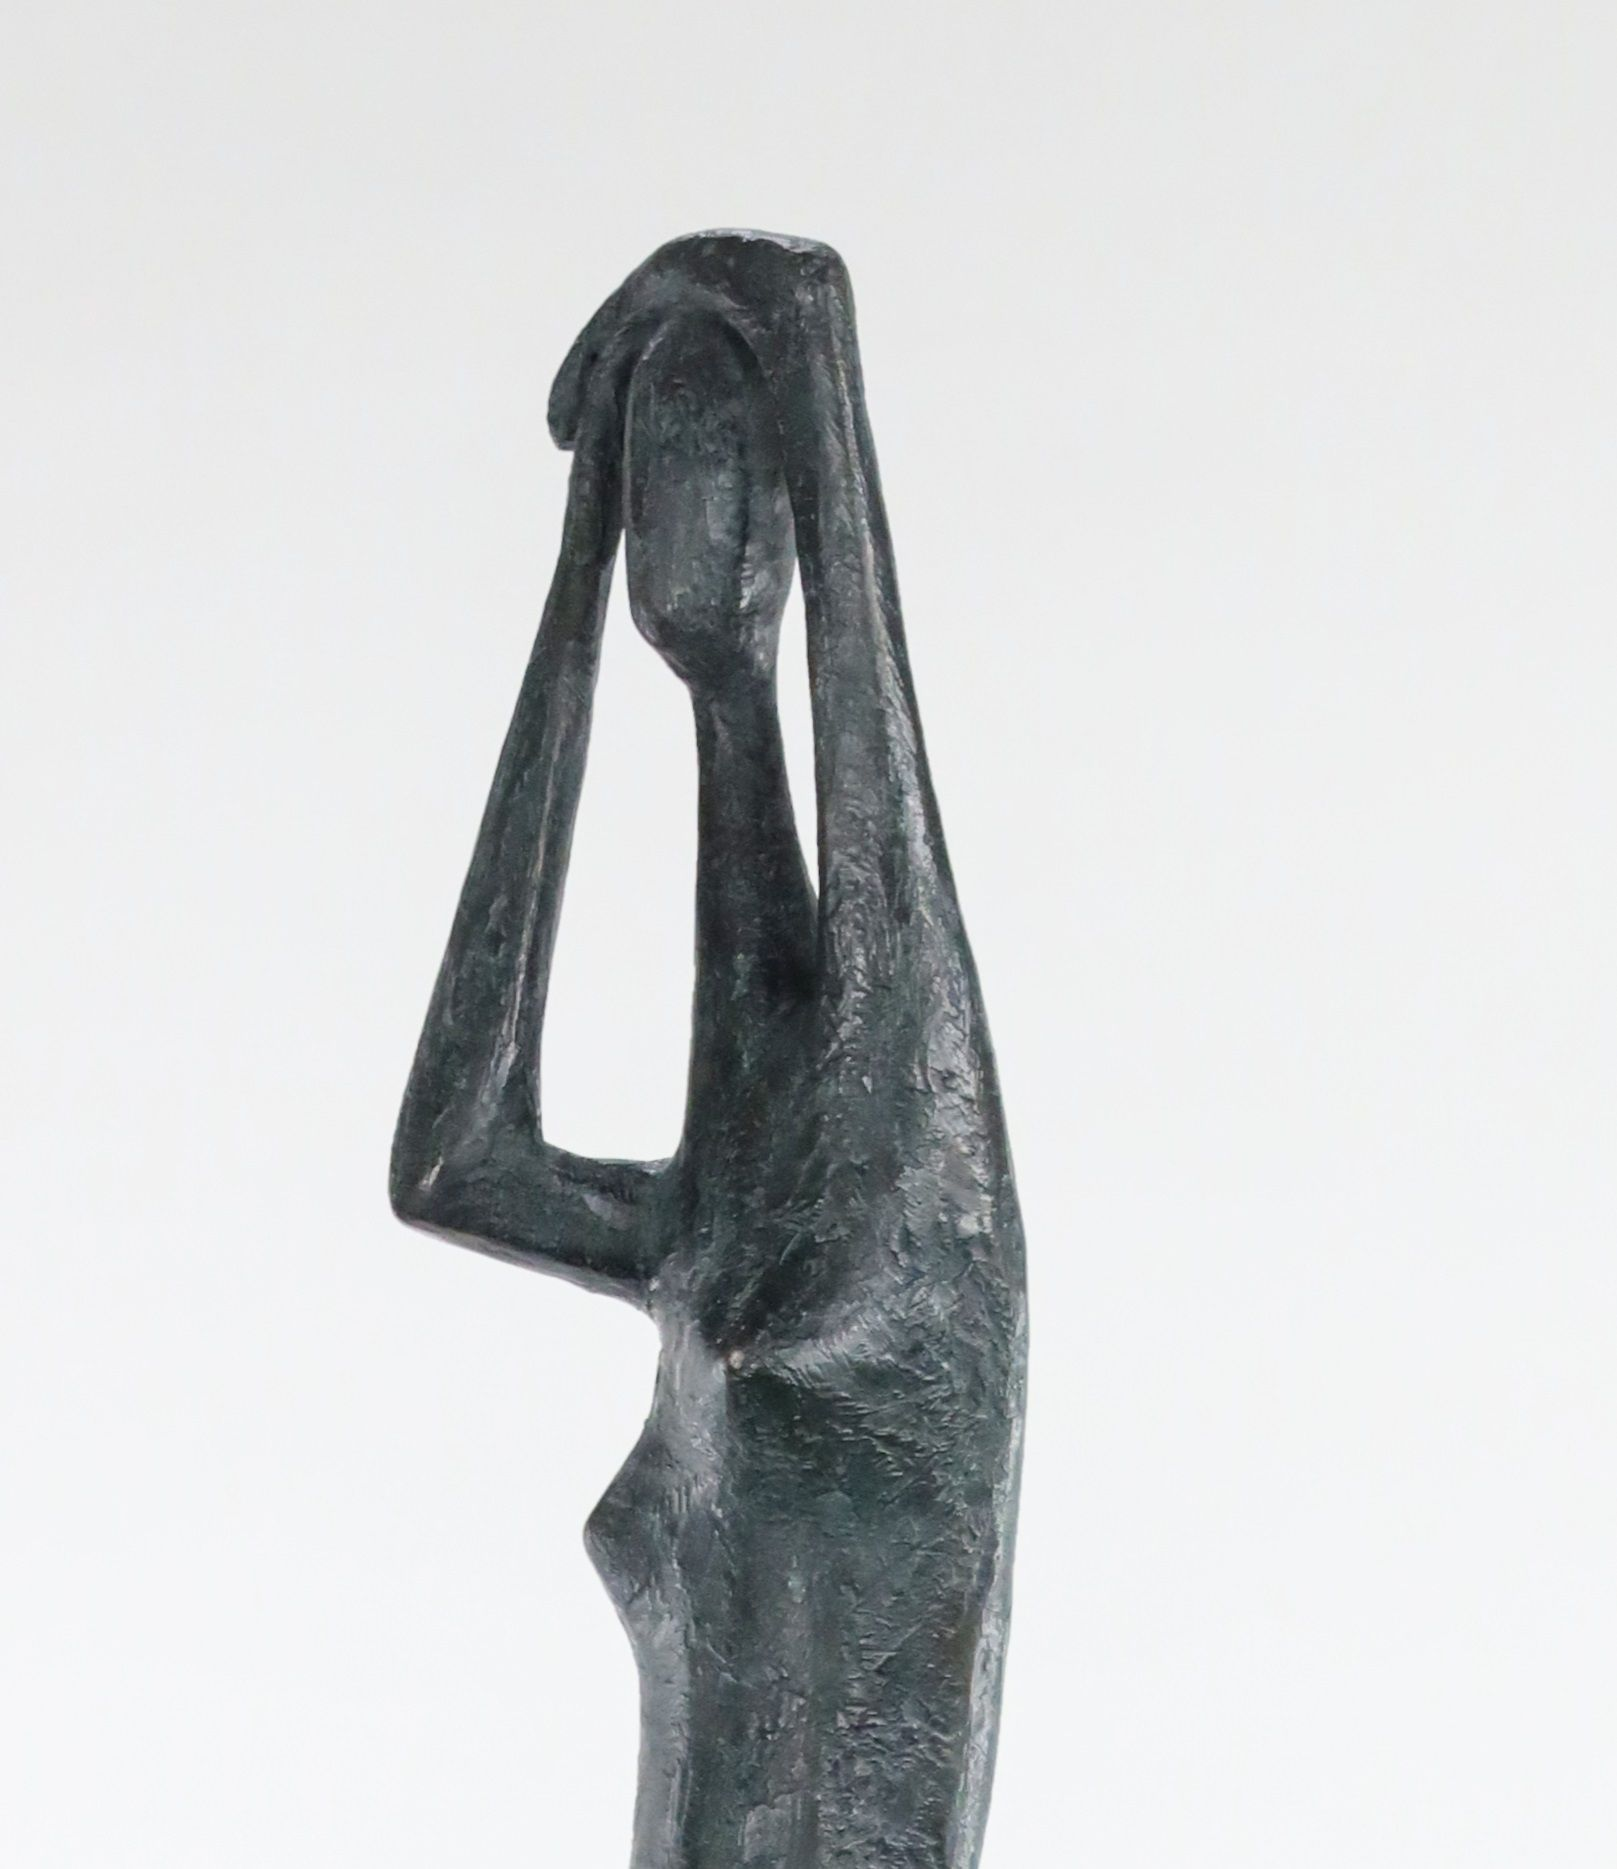 Great Arms Raised Standing Figure I - Pierre Yermia - Sculpture - detail 4